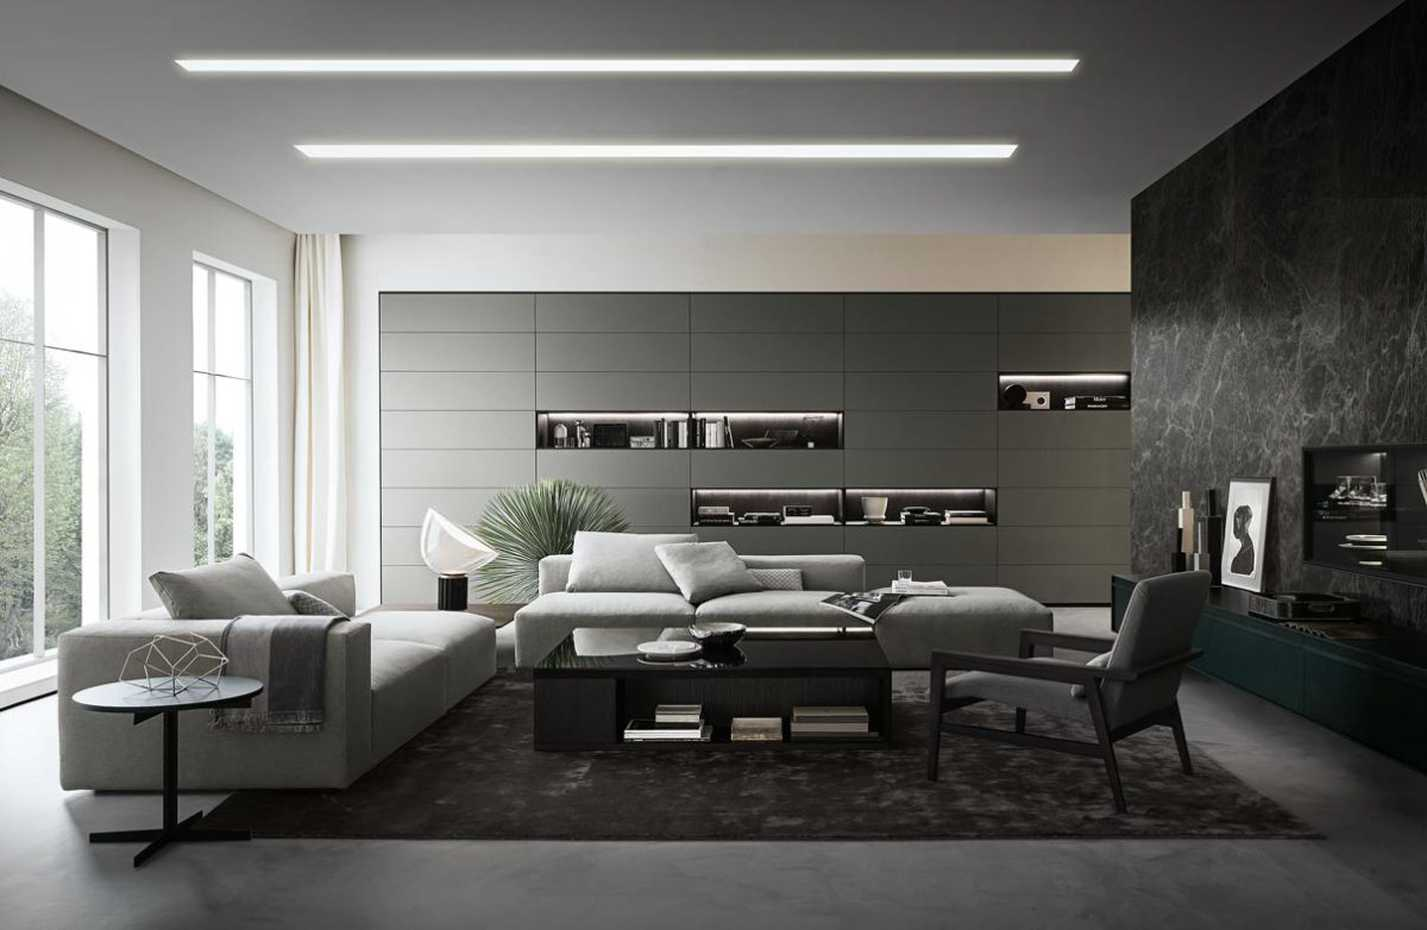 Flexus System by Giellesse product image 6